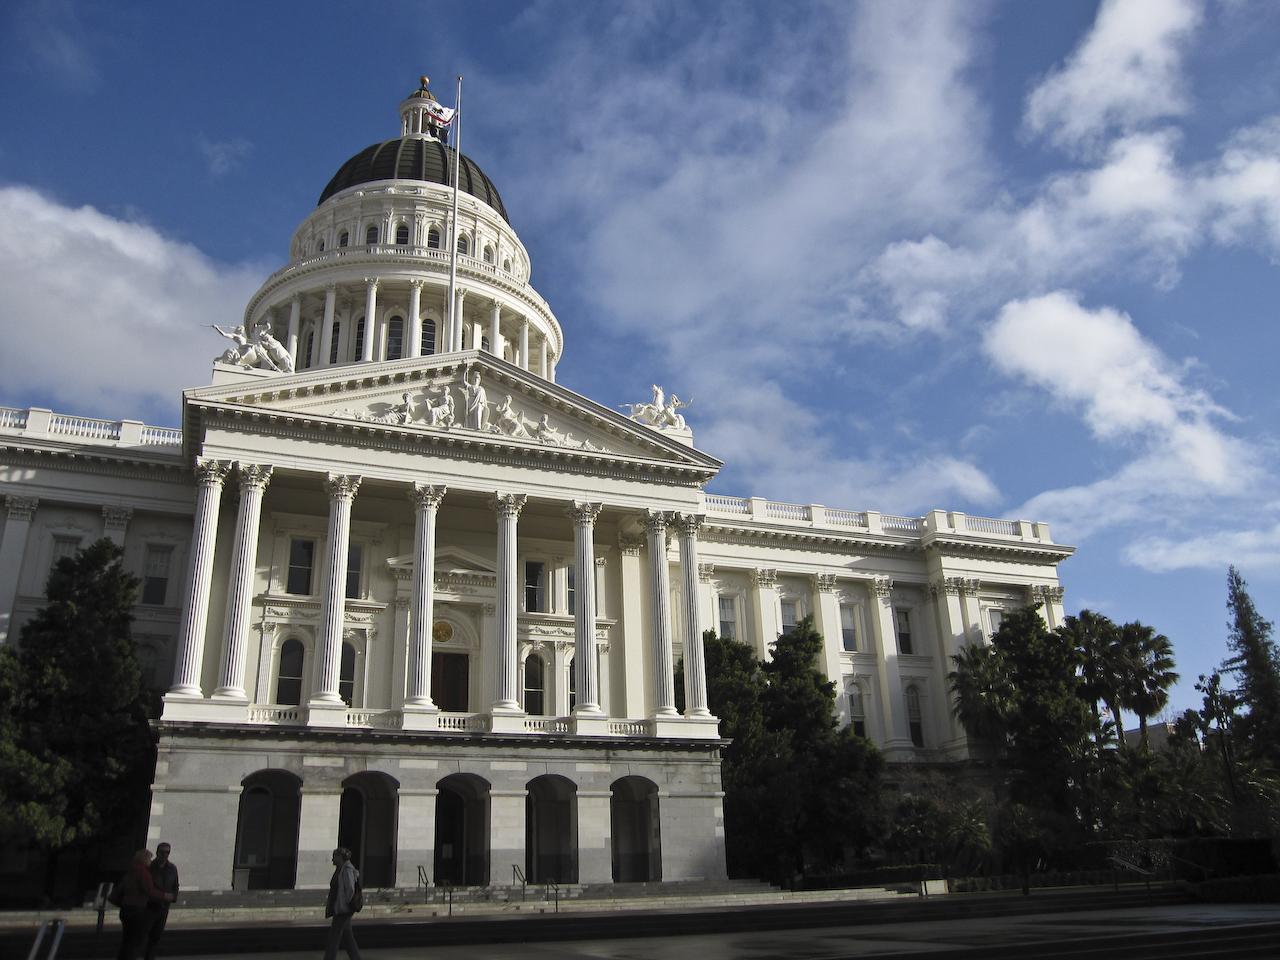 The California State Capitol in Sacramento (photo by Jessica Paterson/Flickr)